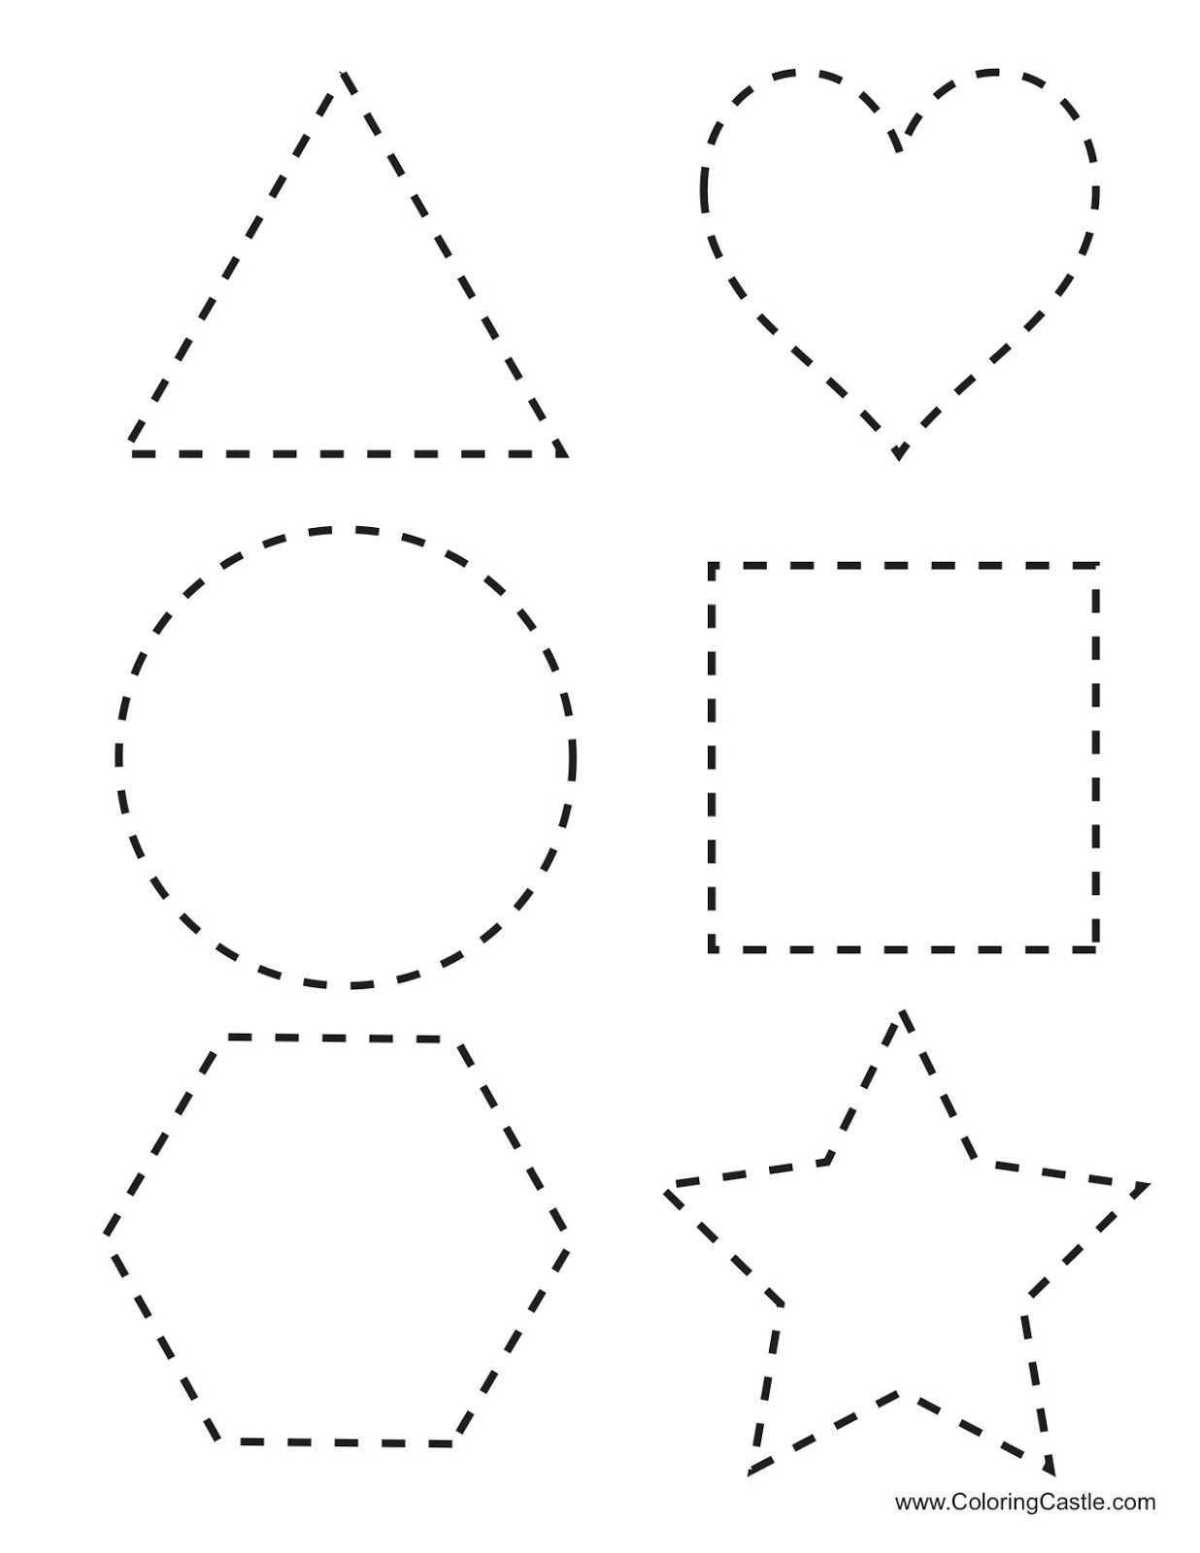 Polygon Worksheets 3rd Grade Shape Tracing Worksheets for Learning Free Analytic Geometry